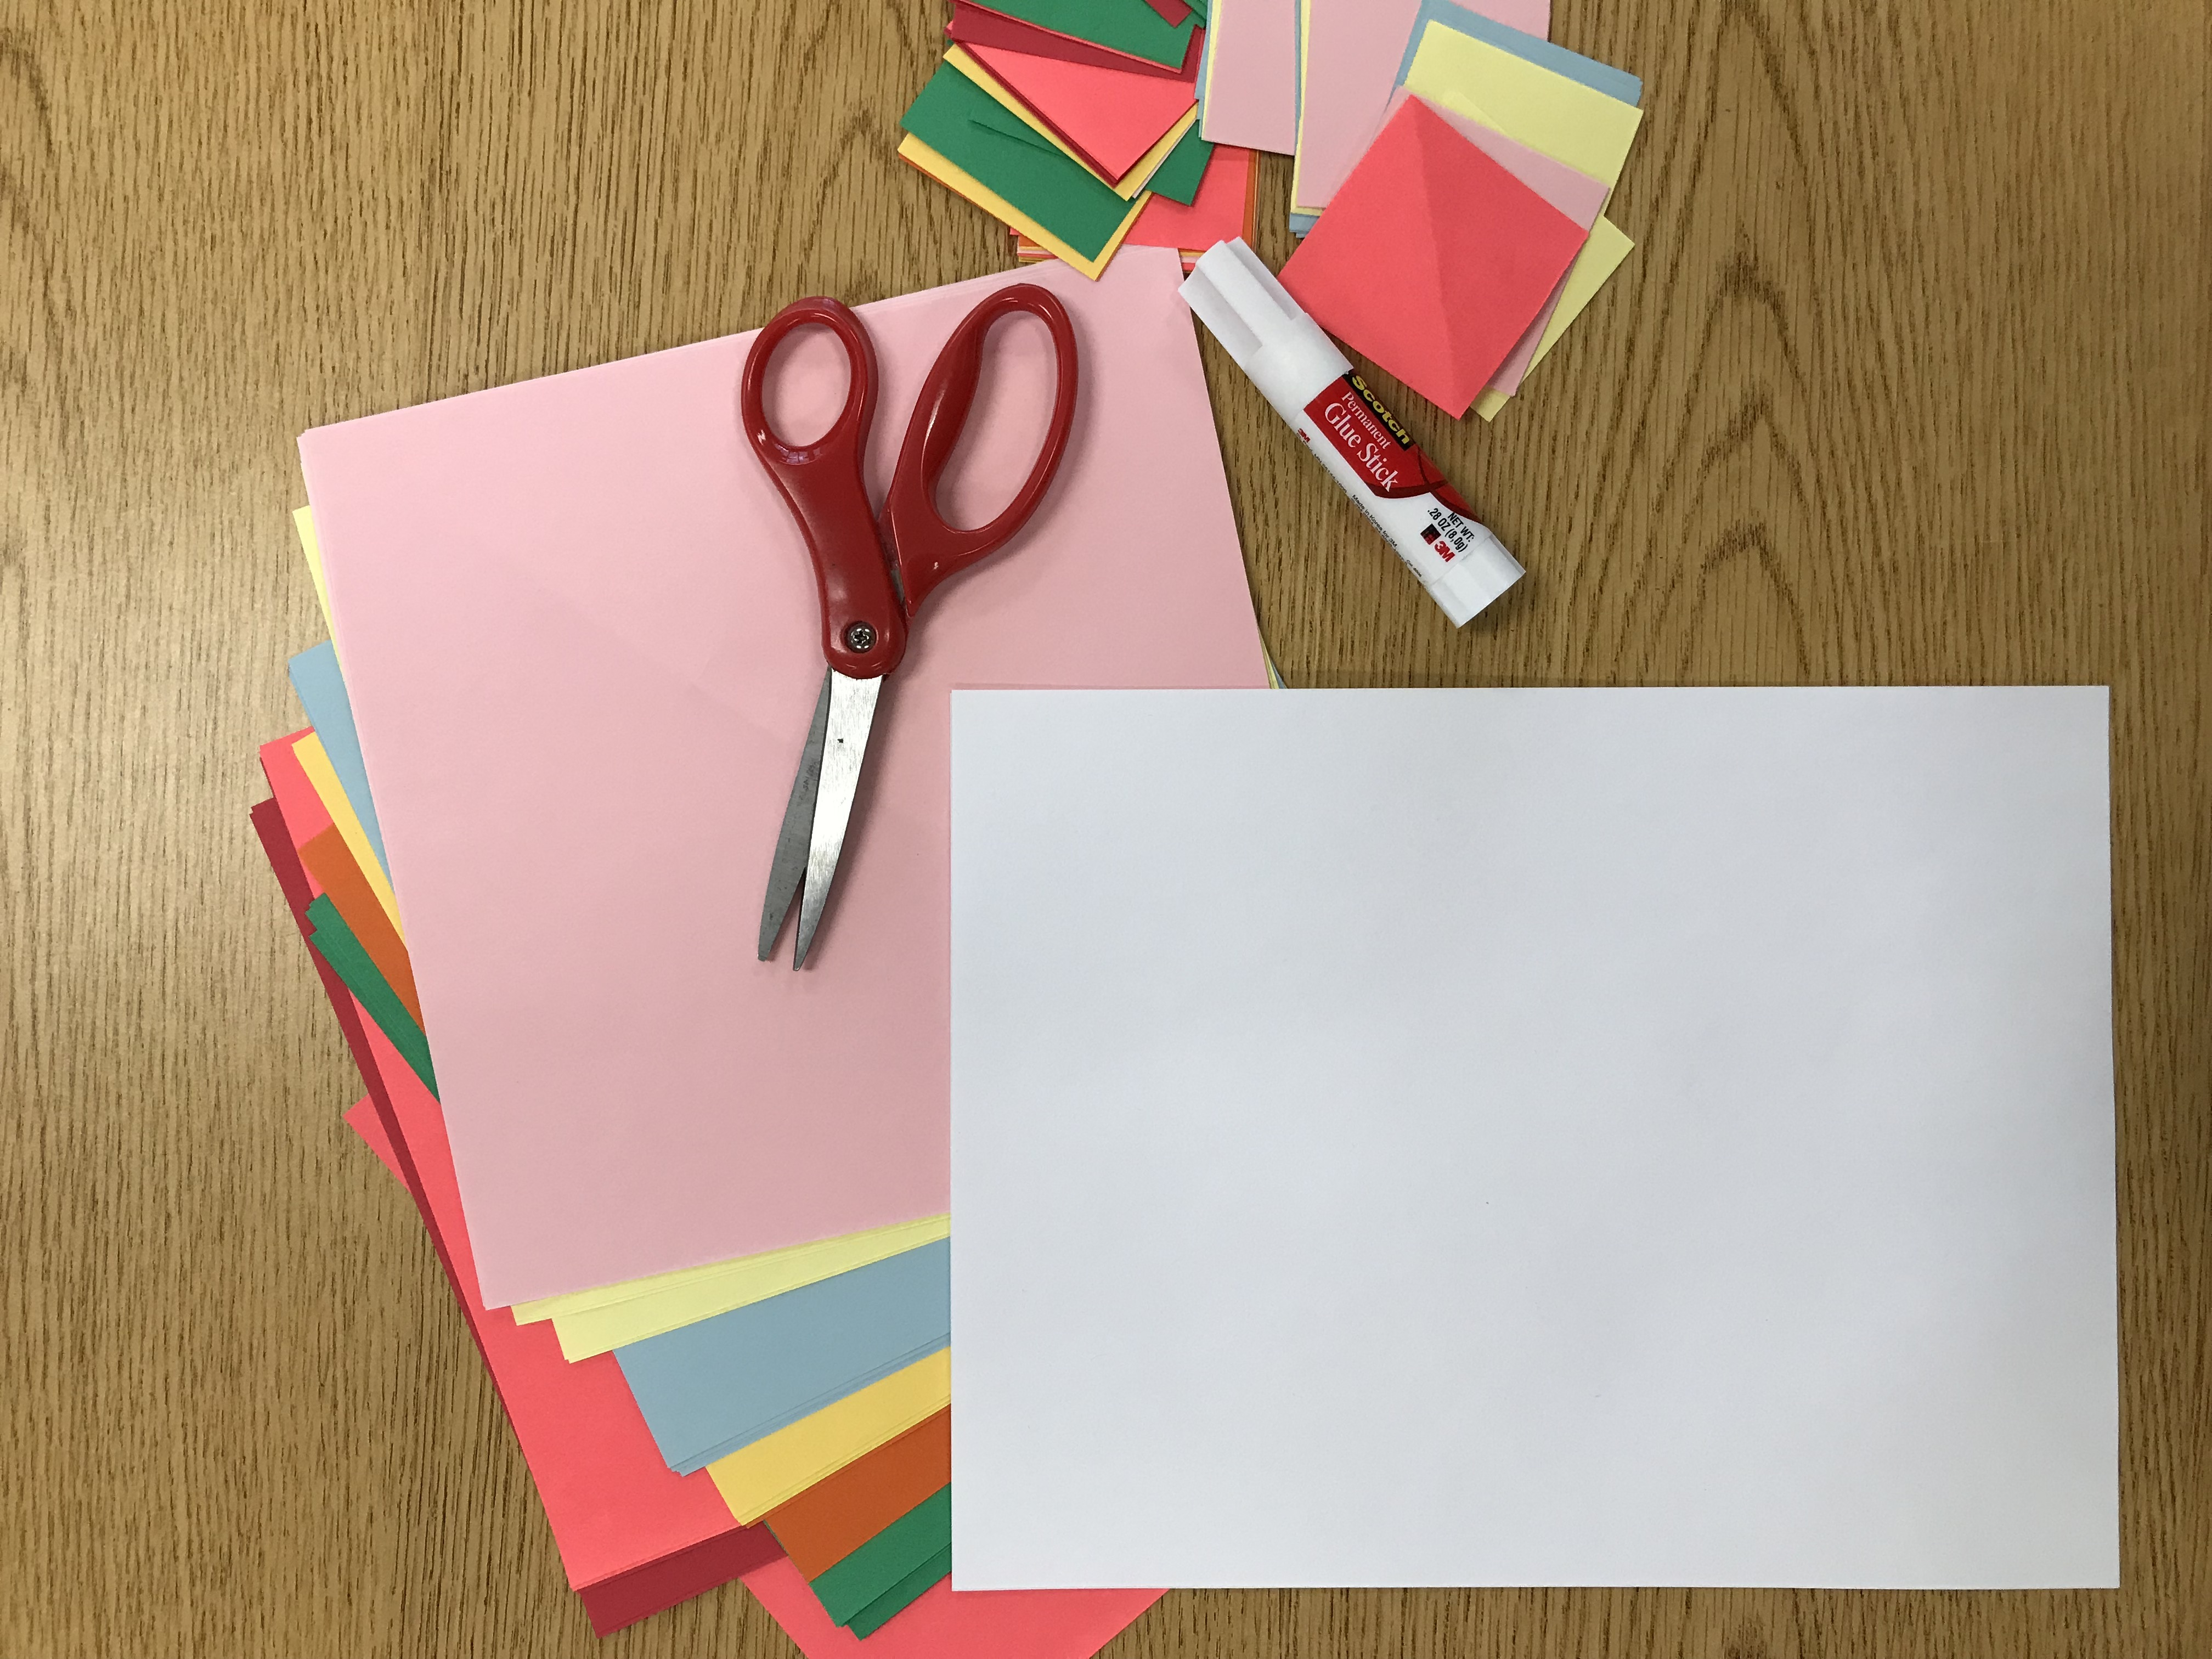 Colorful assortment of papers